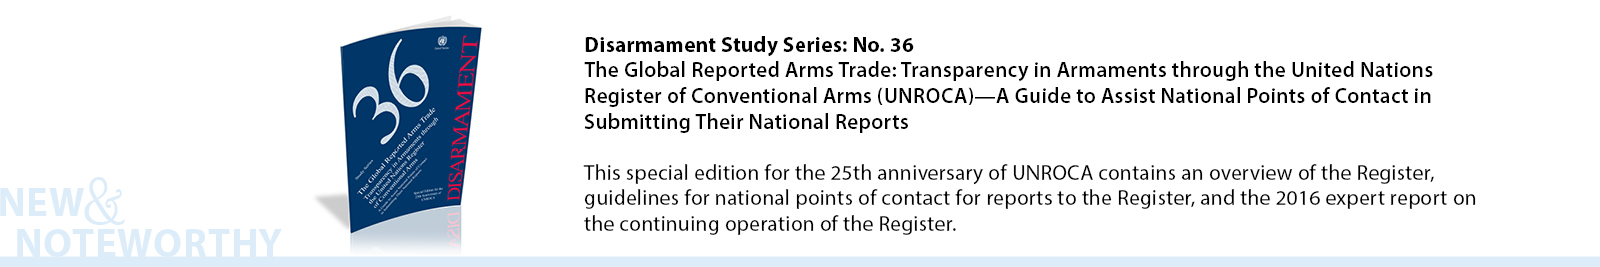 On the occasion of the 25th anniversary of the United Nations Register of Conventional Arms, the Office for Disarmament Affairs is publishing this special edition of the Disarmament Study Series. This volume contains a newly written overview of the Register for reference by Governments and the interested public, original material to guide national points of contact in preparing and submitting reports for the Register, and the report of the 2016 Group of Governmental Experts on the continuing operation of the Register.